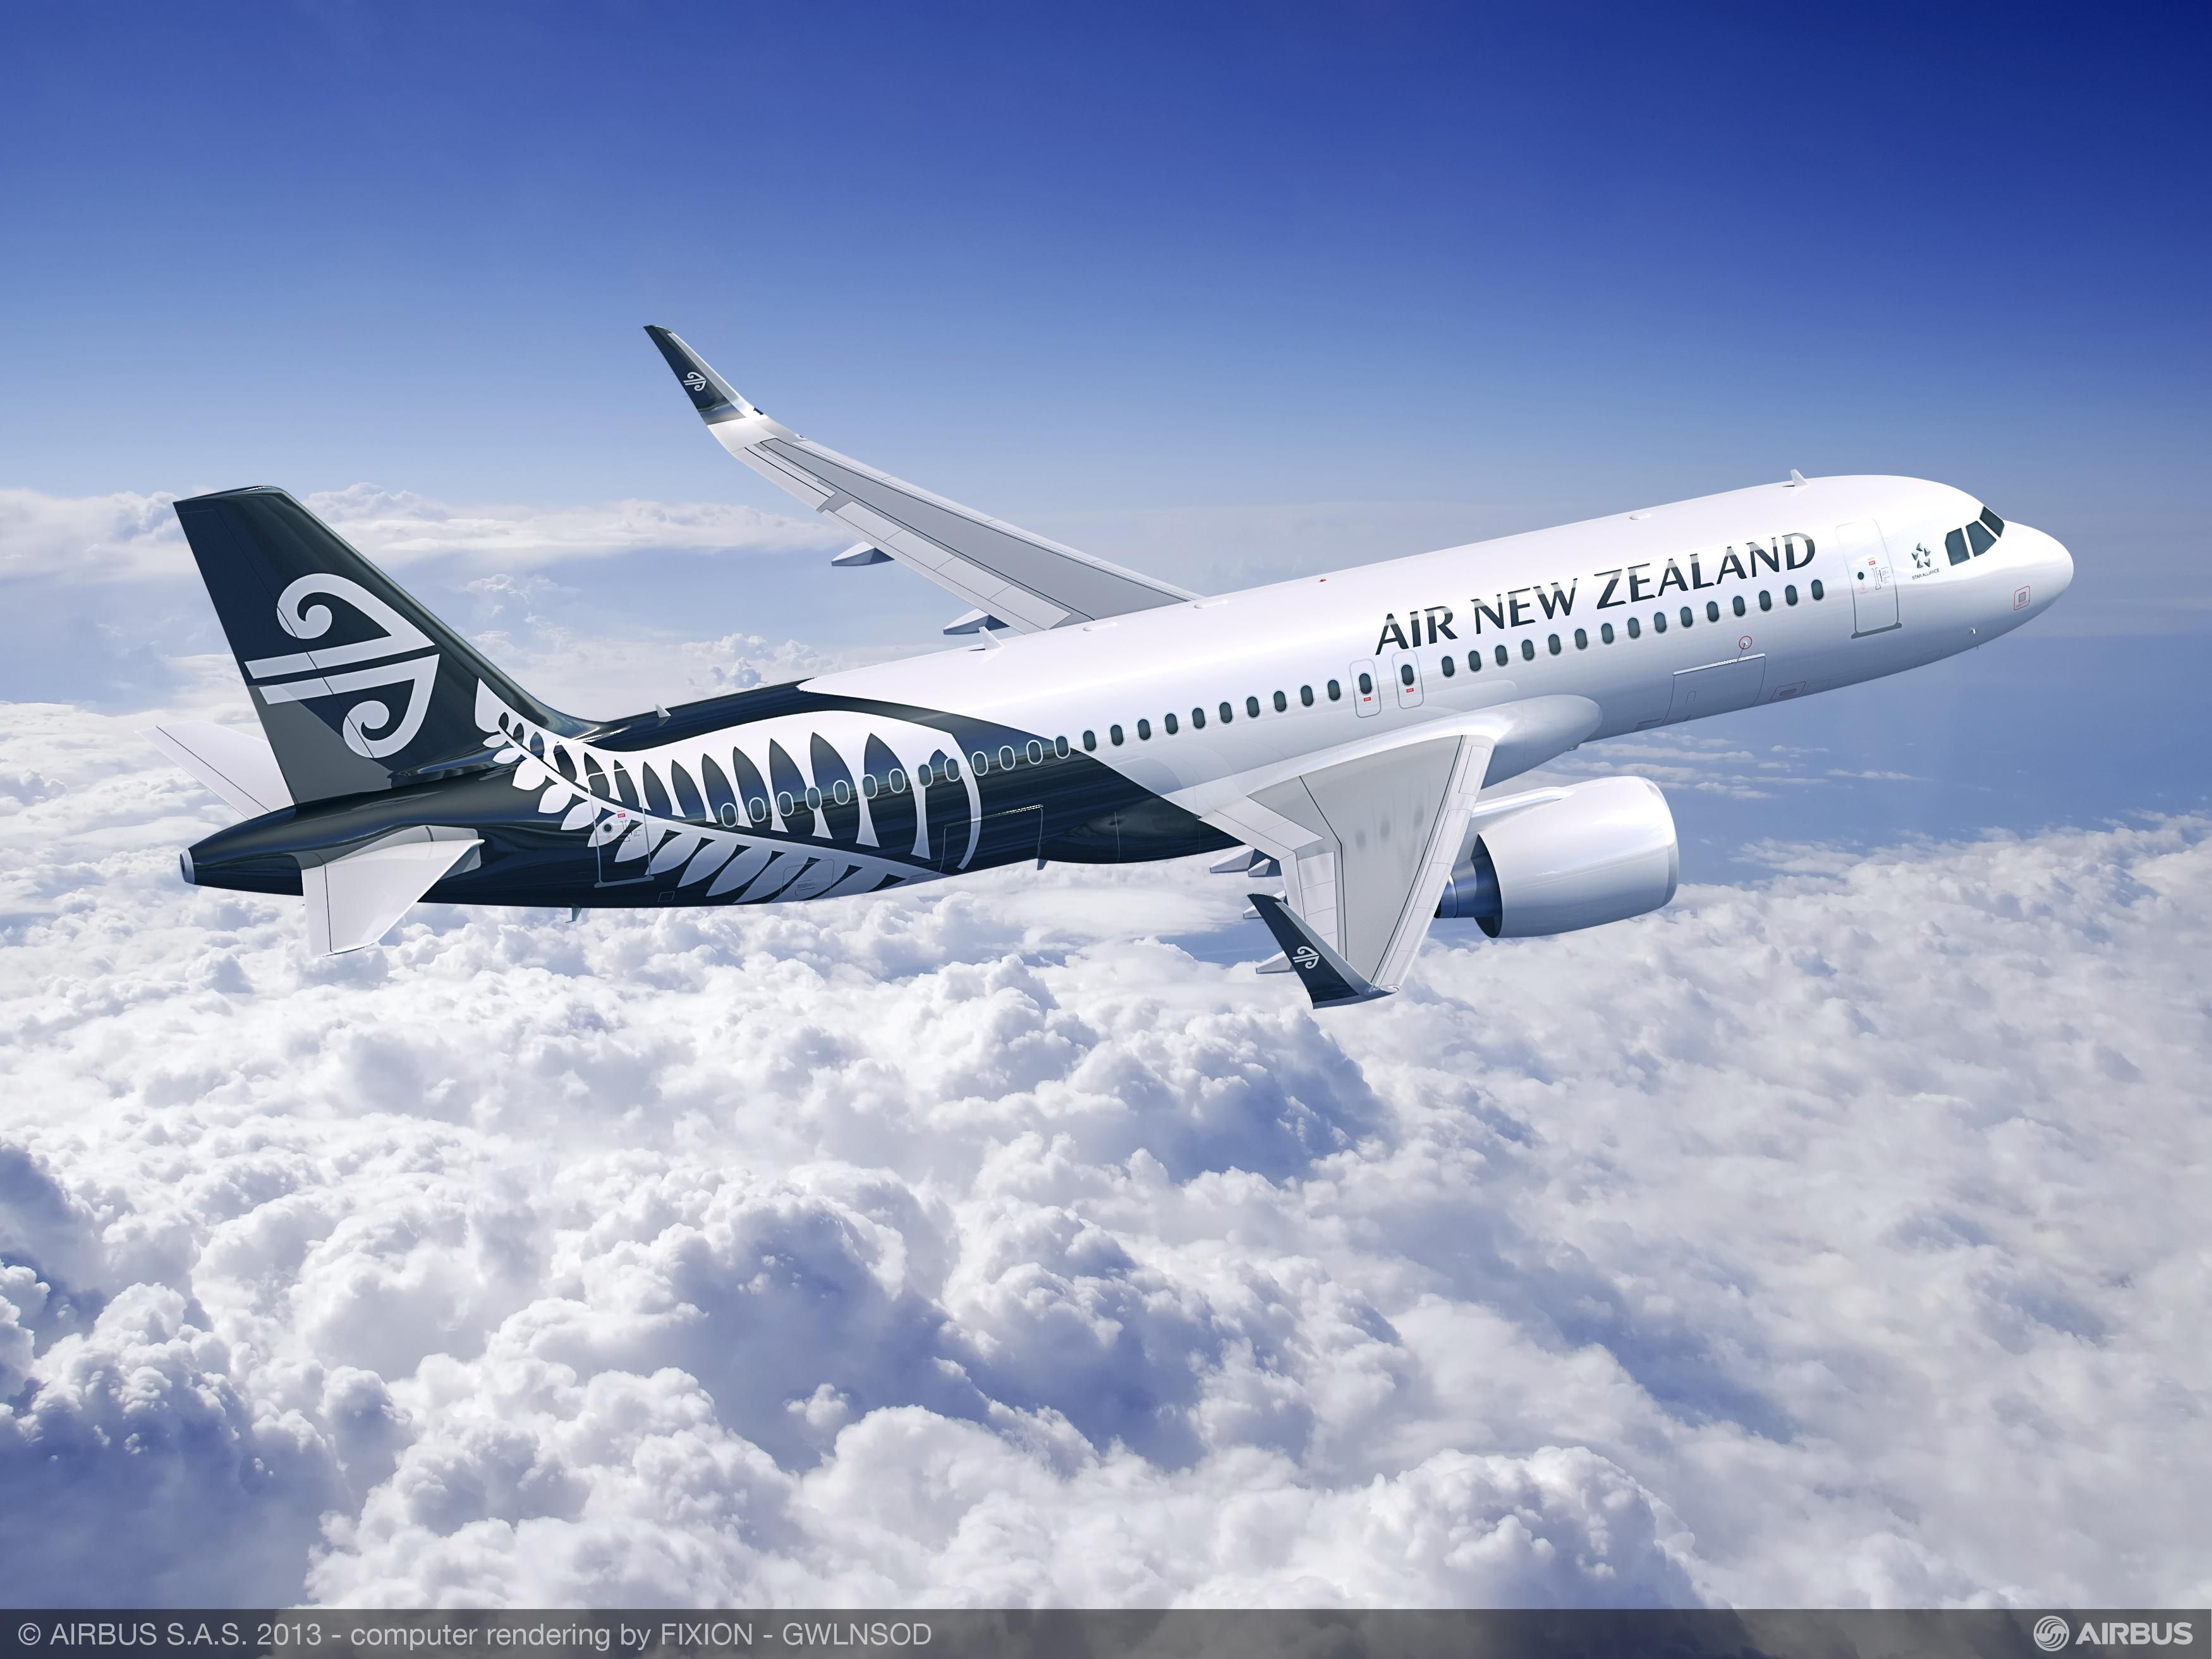 Air New Zealand Selects A320neo Family To Modernise Single